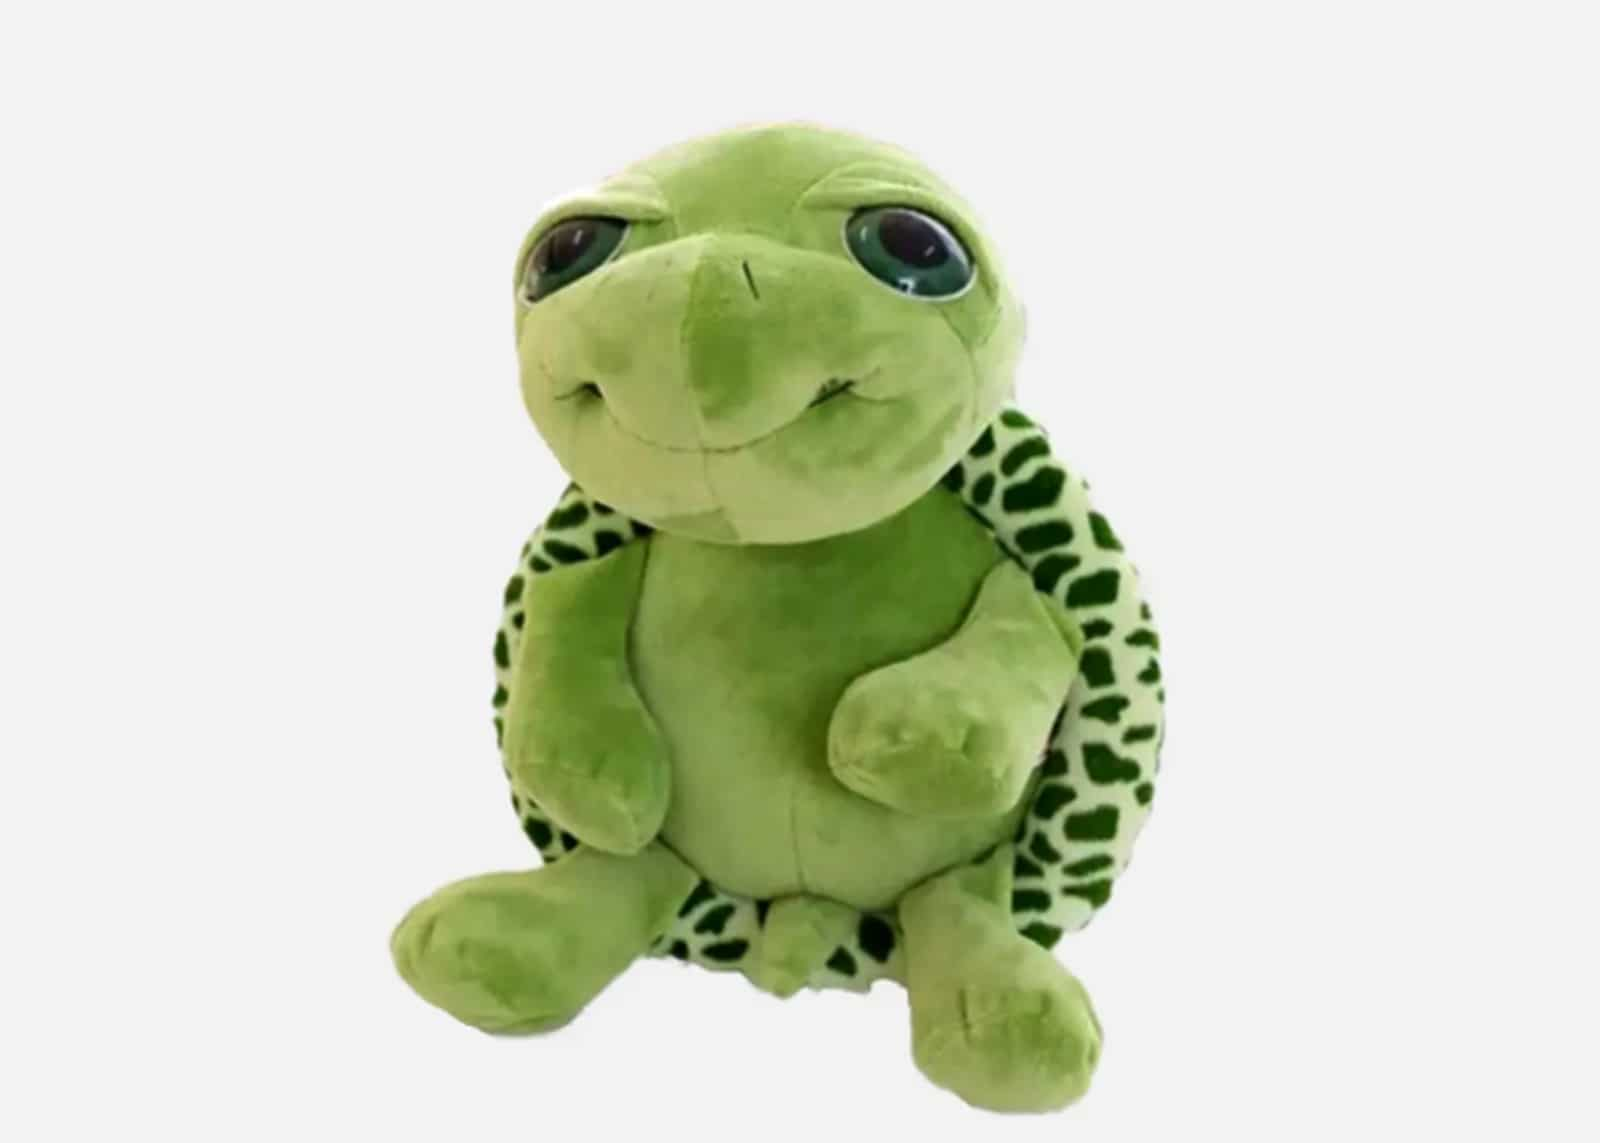 Stuffed-Plush-Cartoon-Turtle-Toy